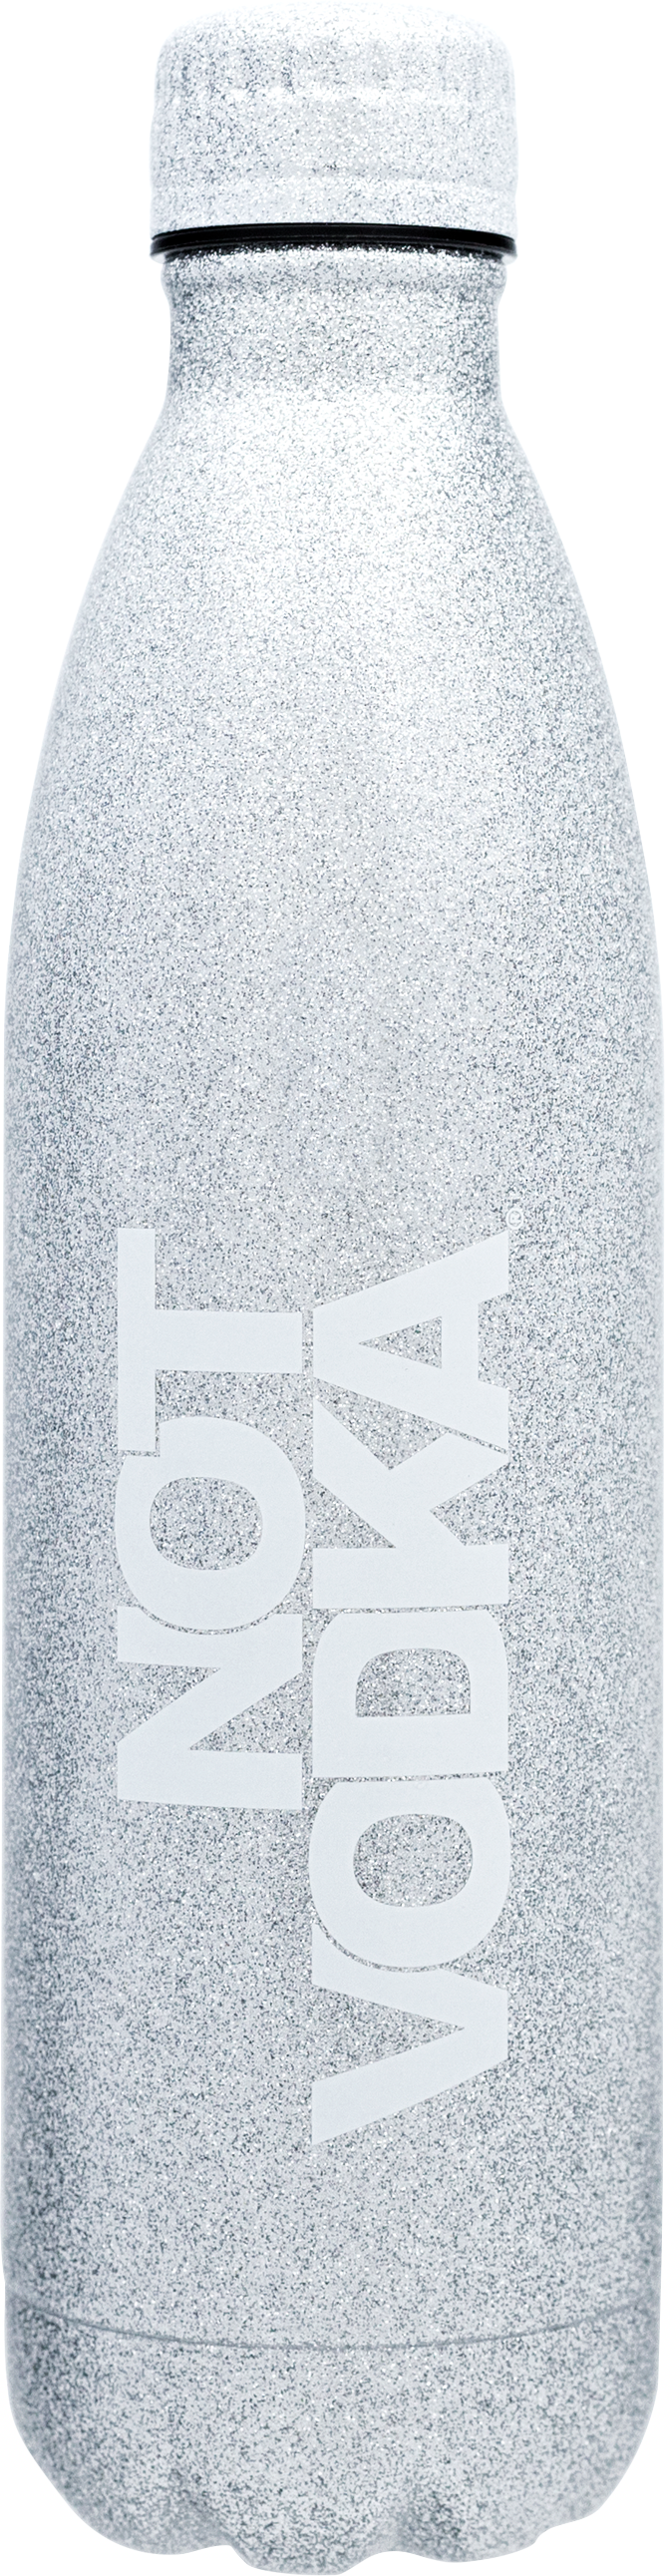 Glitter Series Insulated Water Bottle  Silver, PACKAGE 1Ct